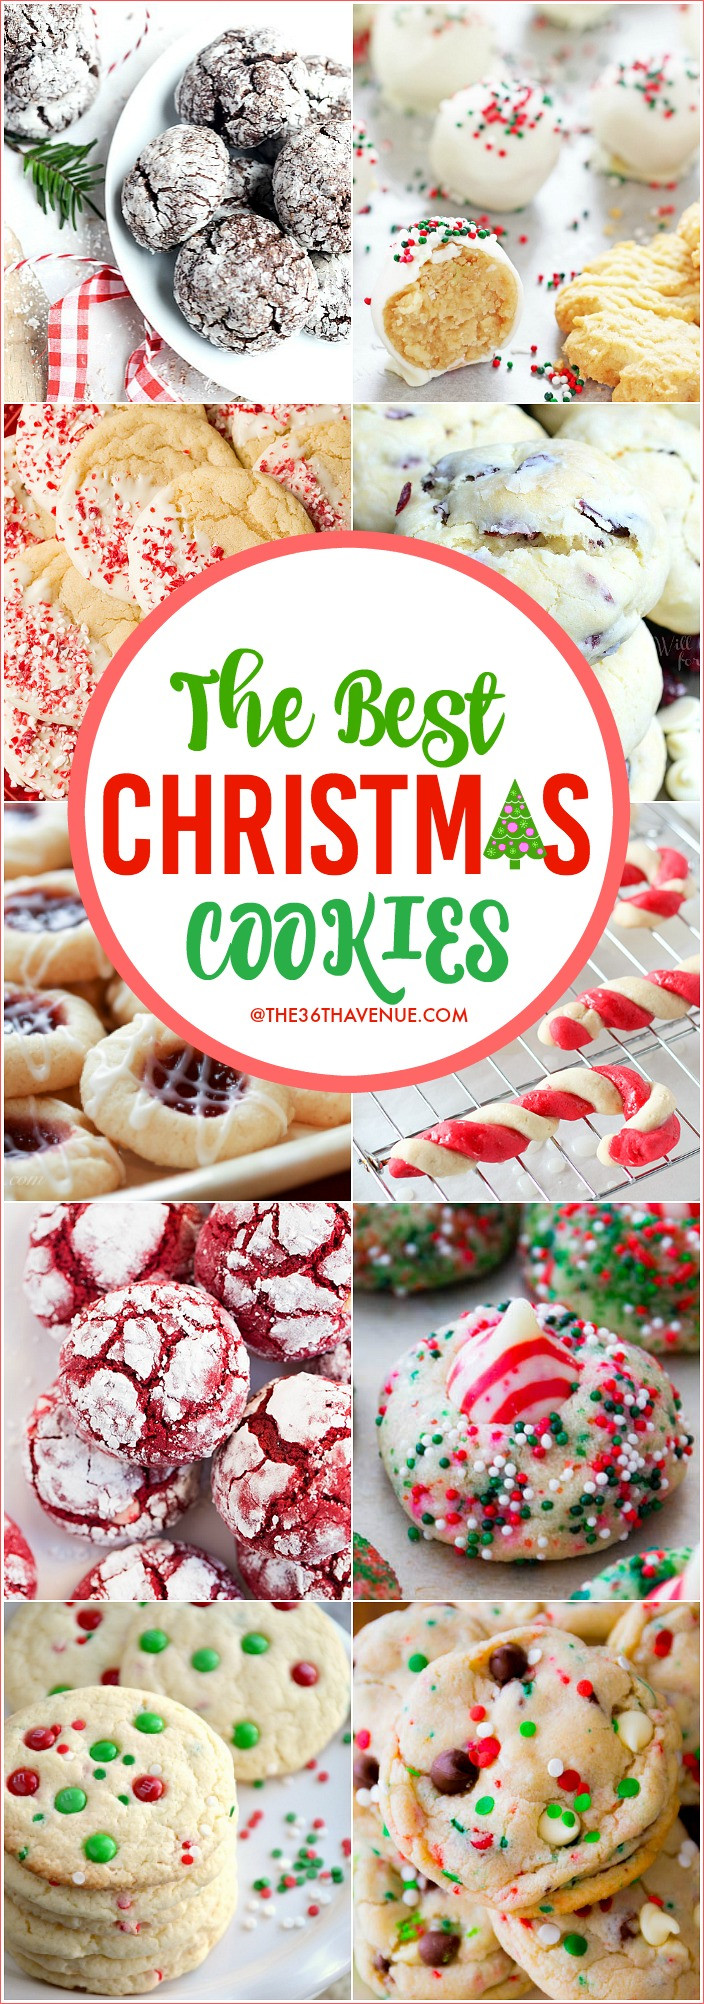 Christmas Baking Gifts  Christmas Cookies Easy Christmas Recipes The 36th AVENUE